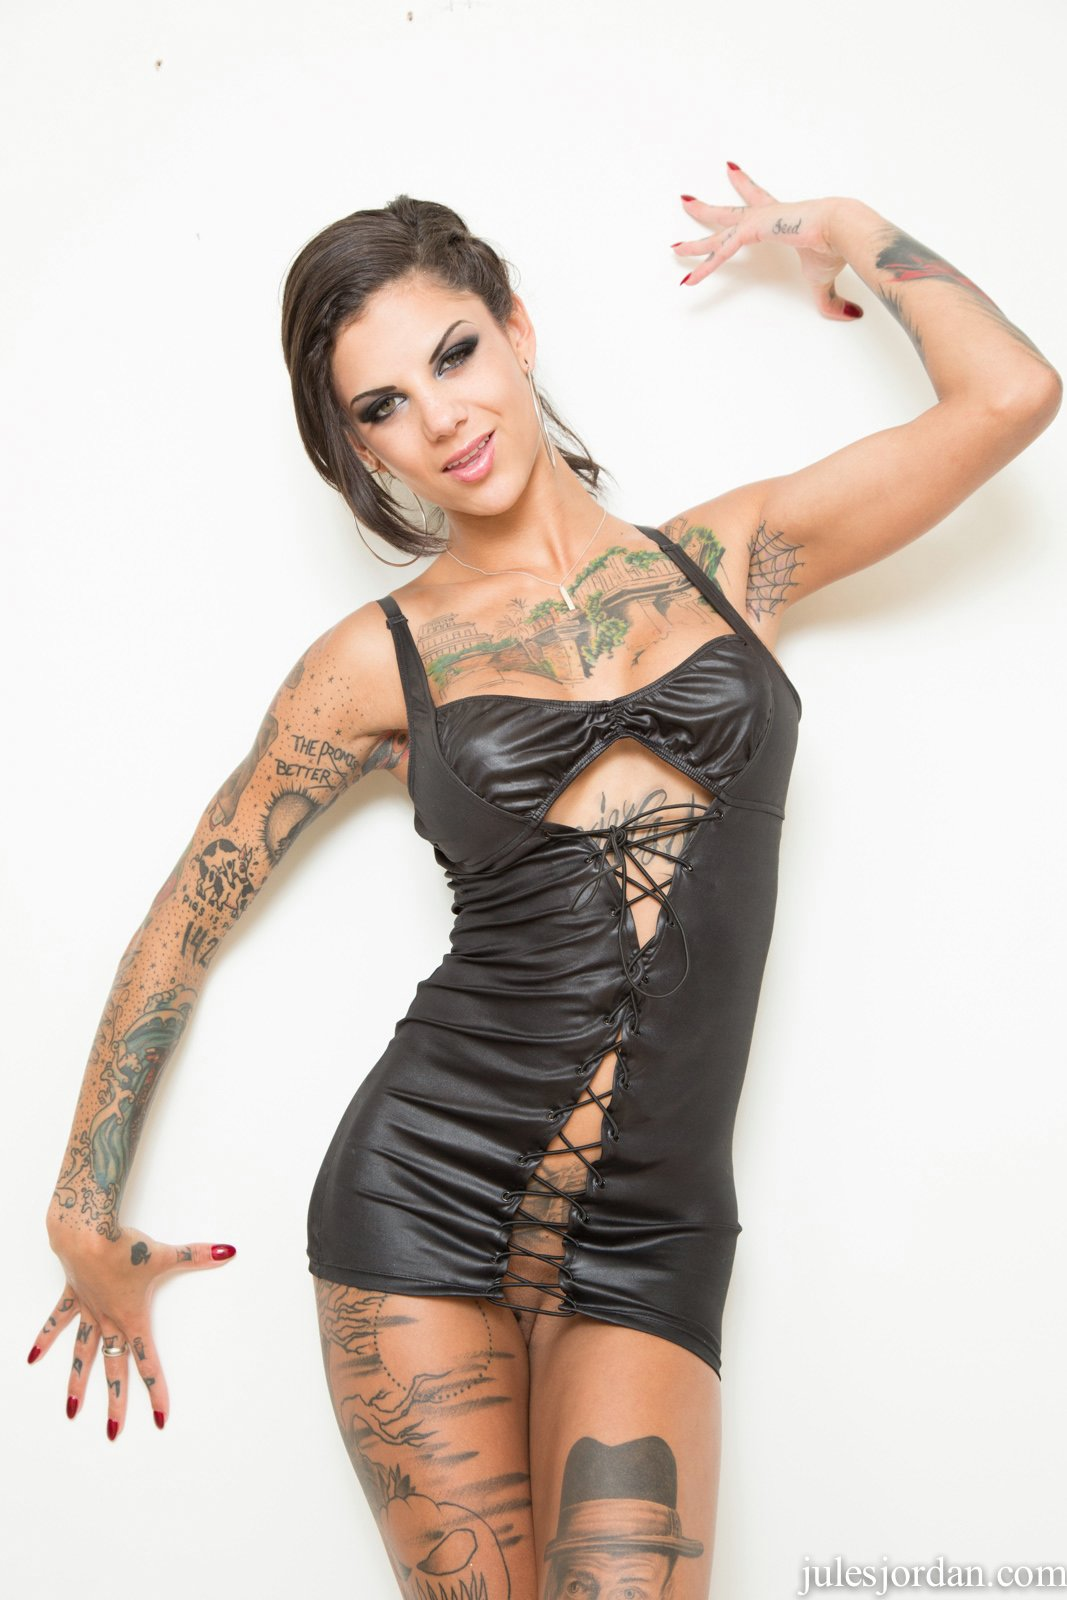 Bonnie rotten fetish Bonnie Rotten In Fetish Outfit Poses And Gets Fucked Very Hard My Pornstar Book